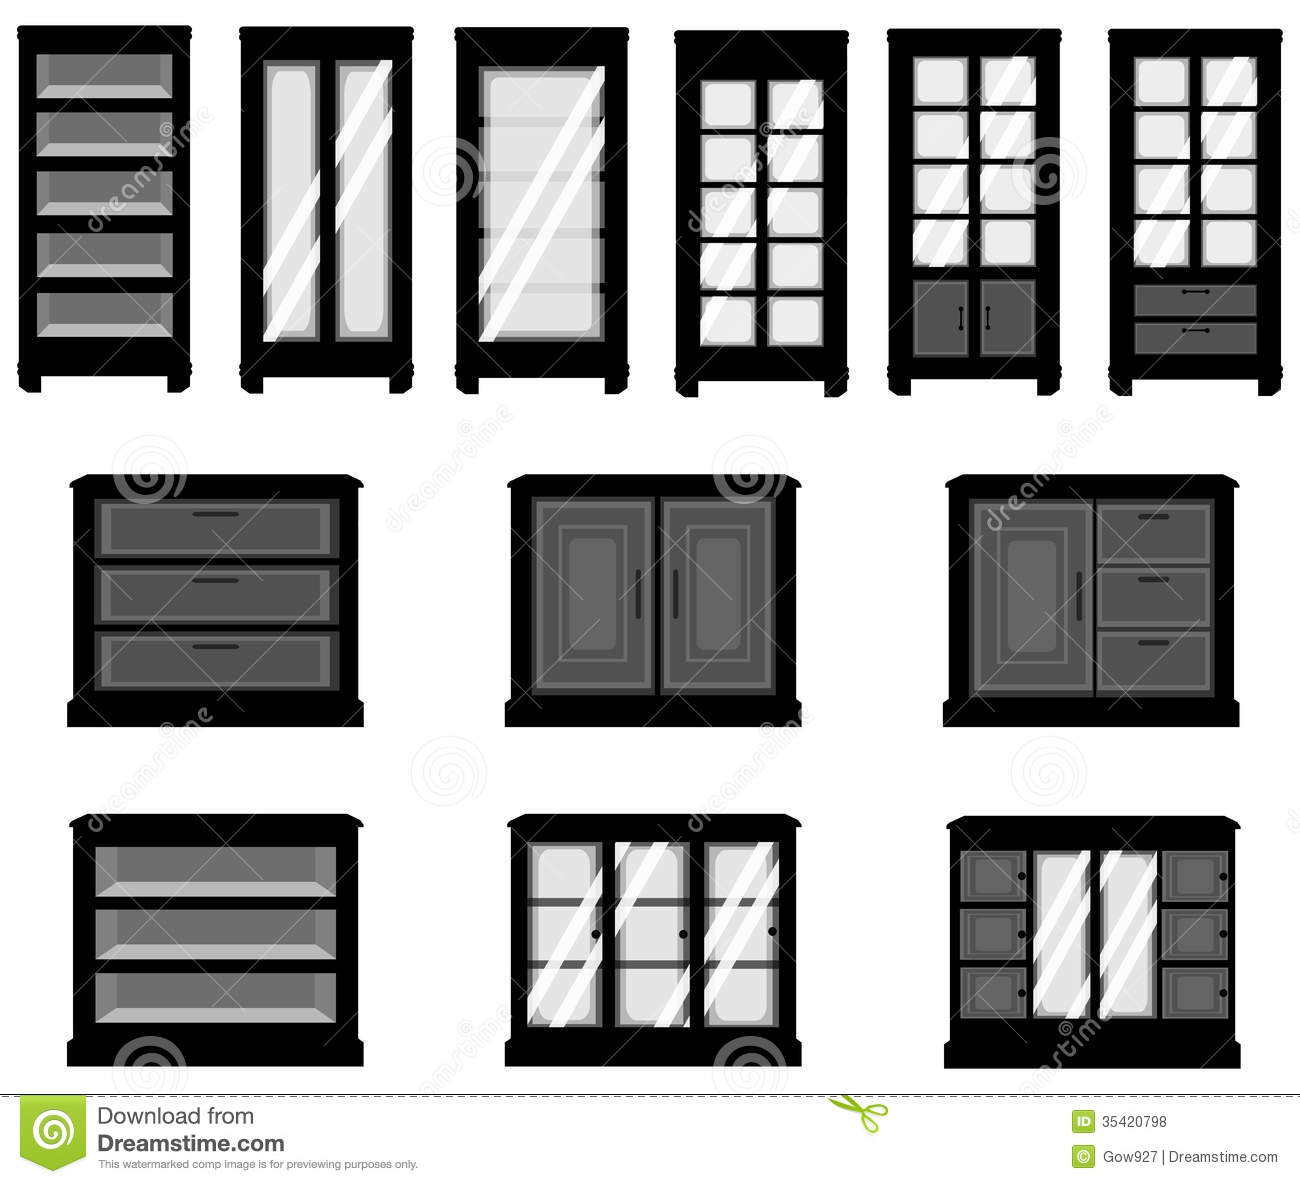 Royalty Free Stock Photos Sets Silhouette Cabinets Create Vector Image35420798 on Baroque Style Interior Design